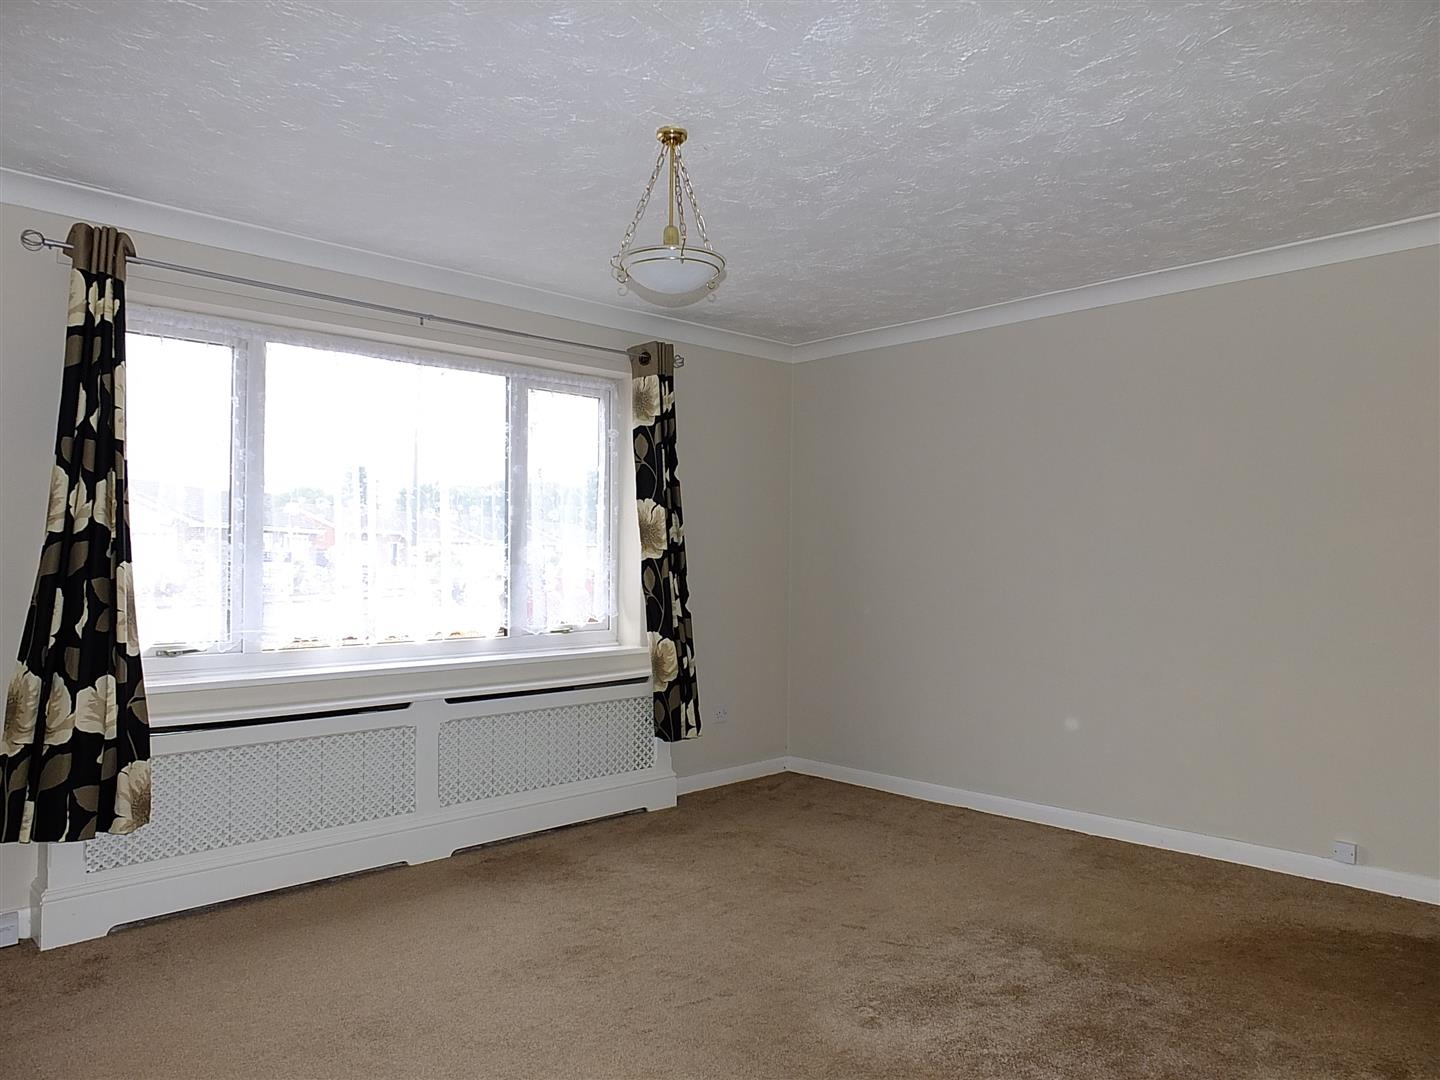 3 bed detached bungalow to rent in Long Sutton Spalding, PE12 9LY  - Property Image 4